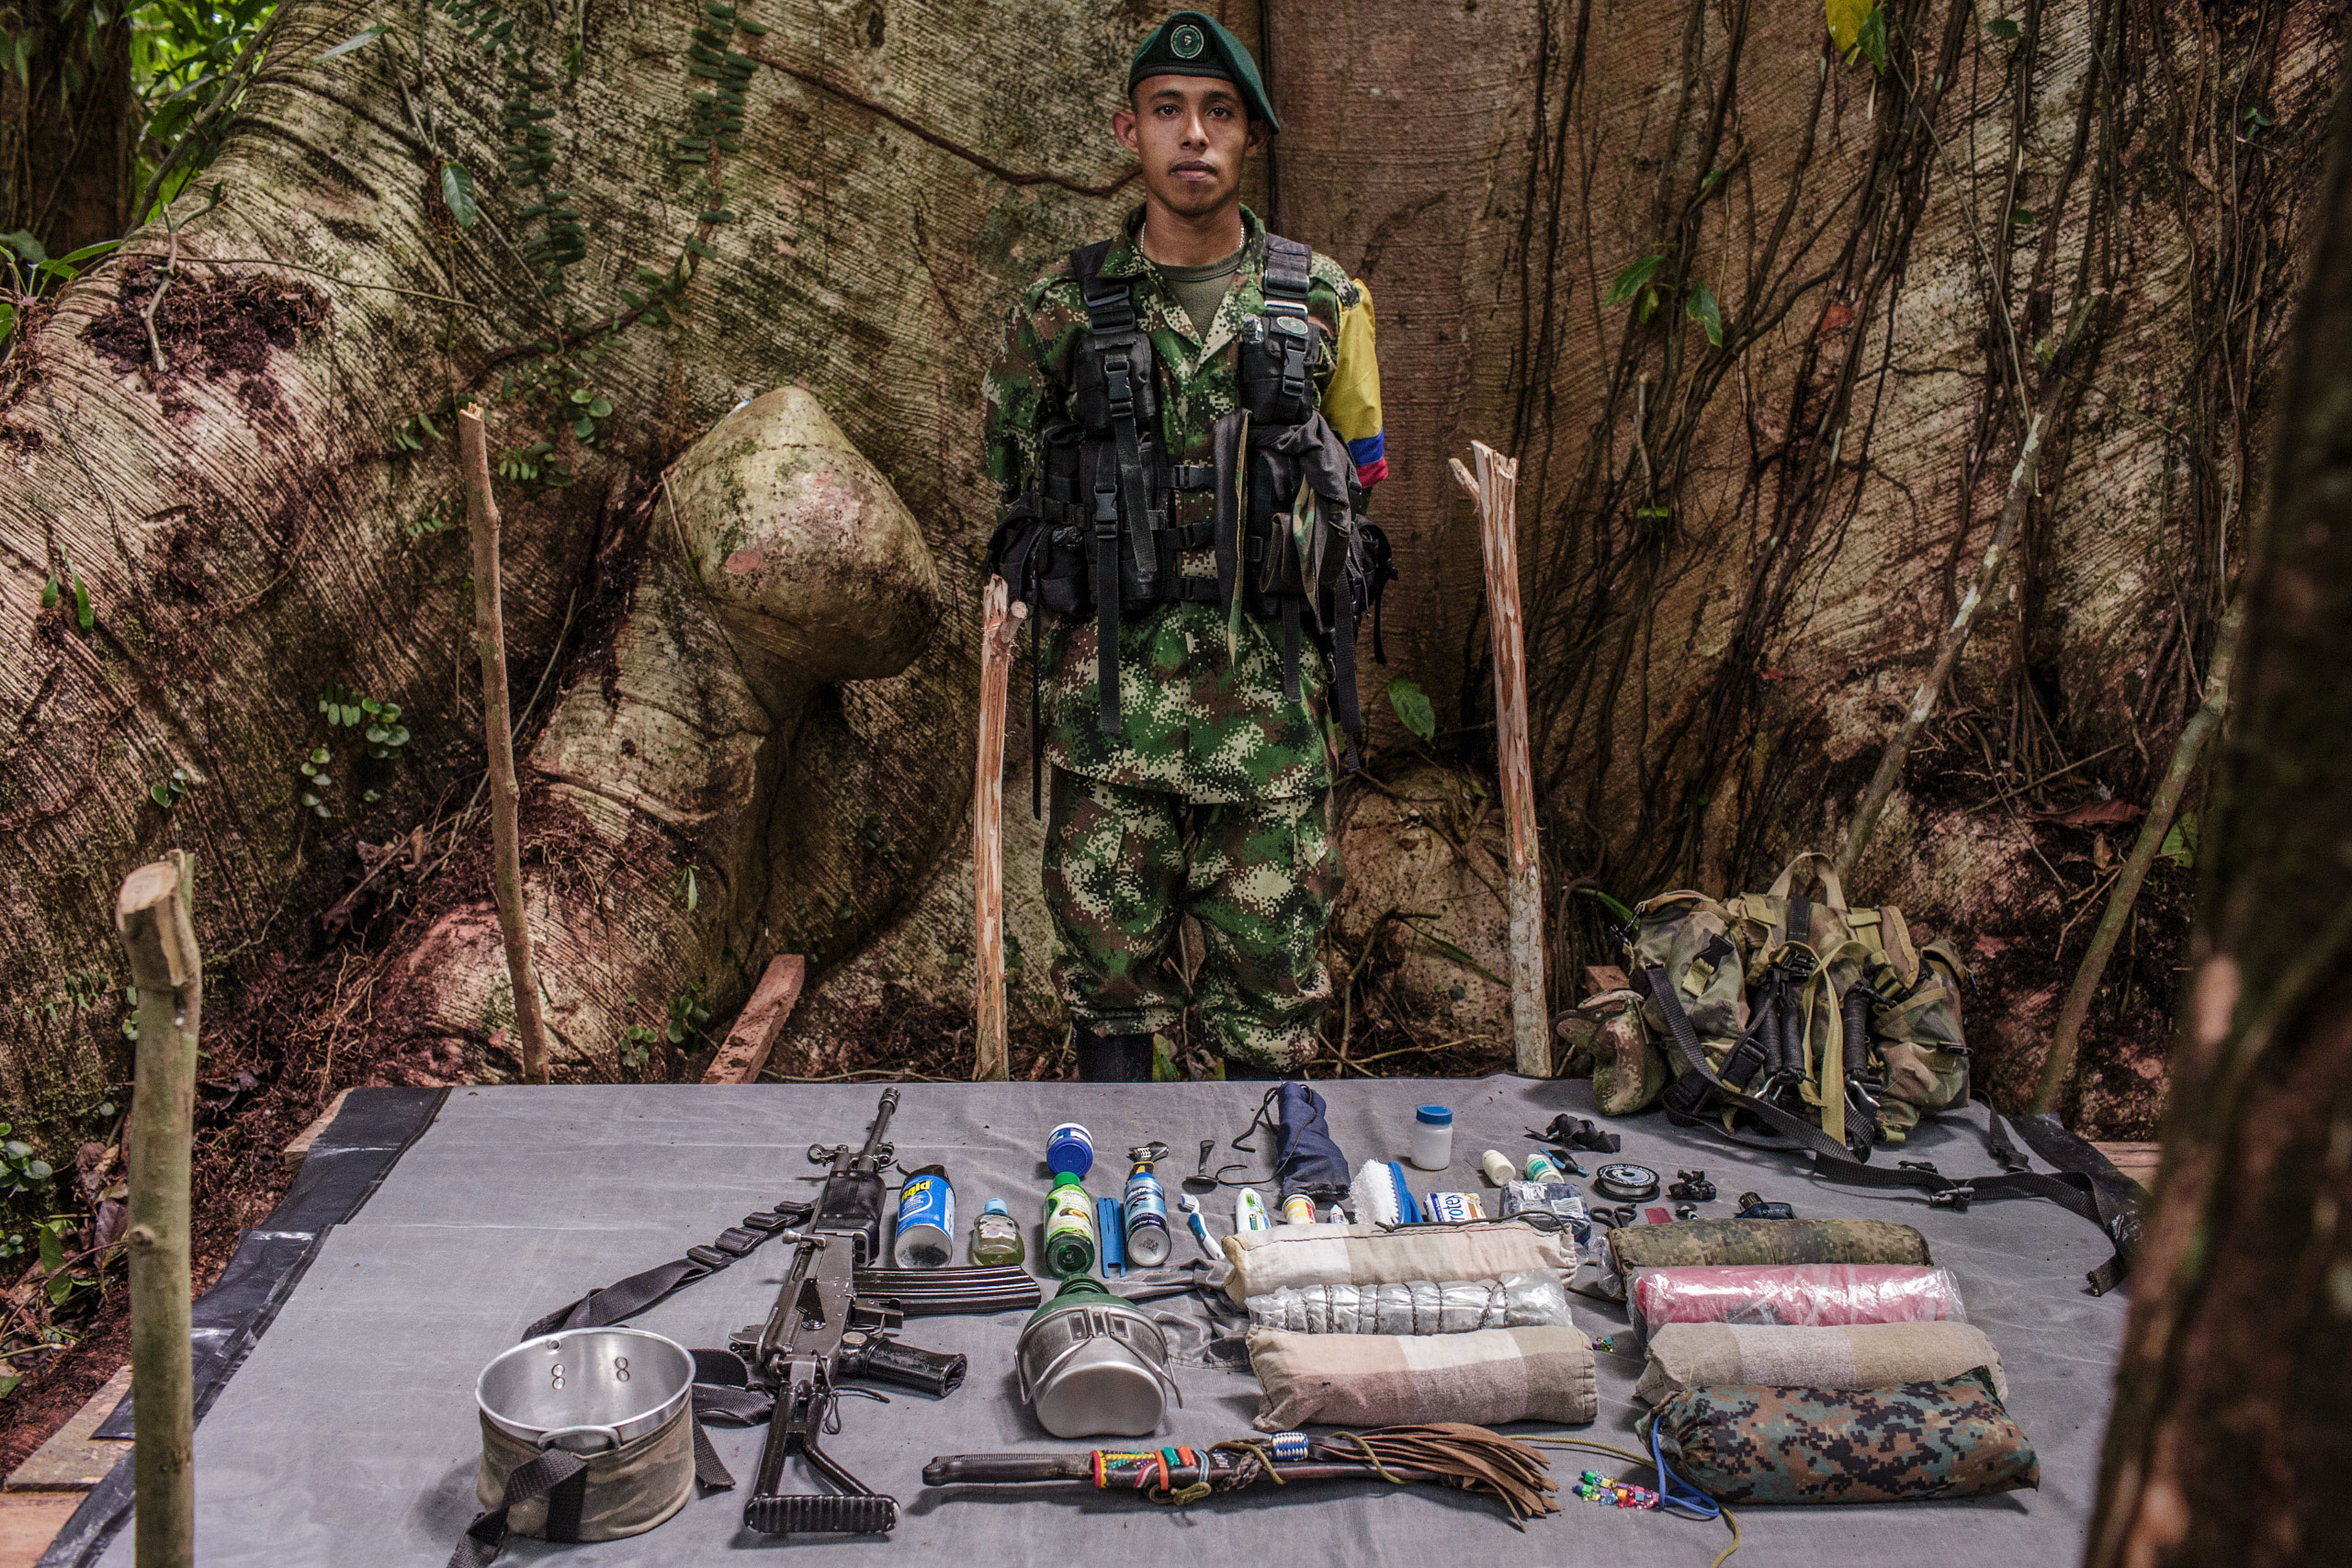 Andres, 24-years old, has been with FARC for 8 years.                                He has expert knowledge of the shallow rivers in the jungle, important terrain for moving troops.